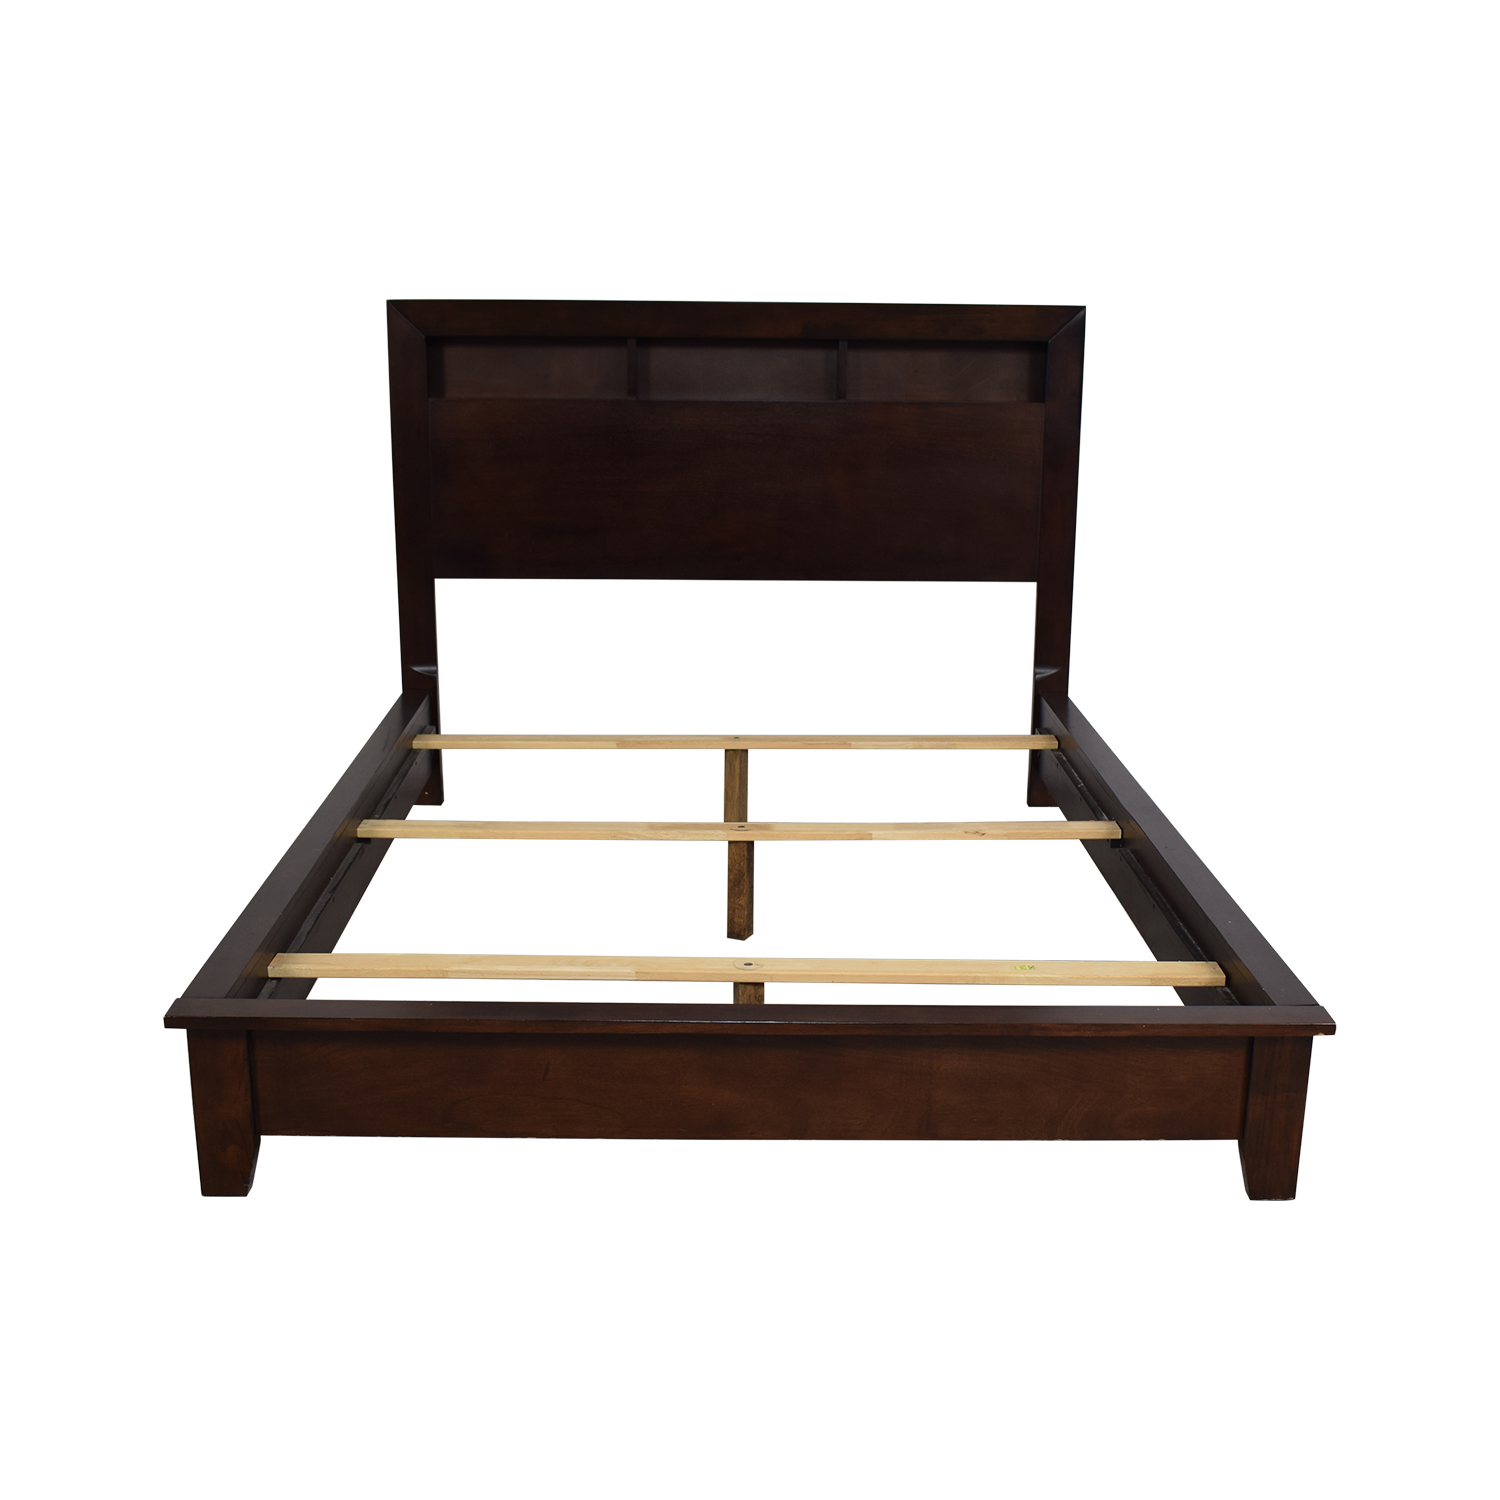 shop American Furniture Queen Bed Frame American Furniture Warehouse Beds